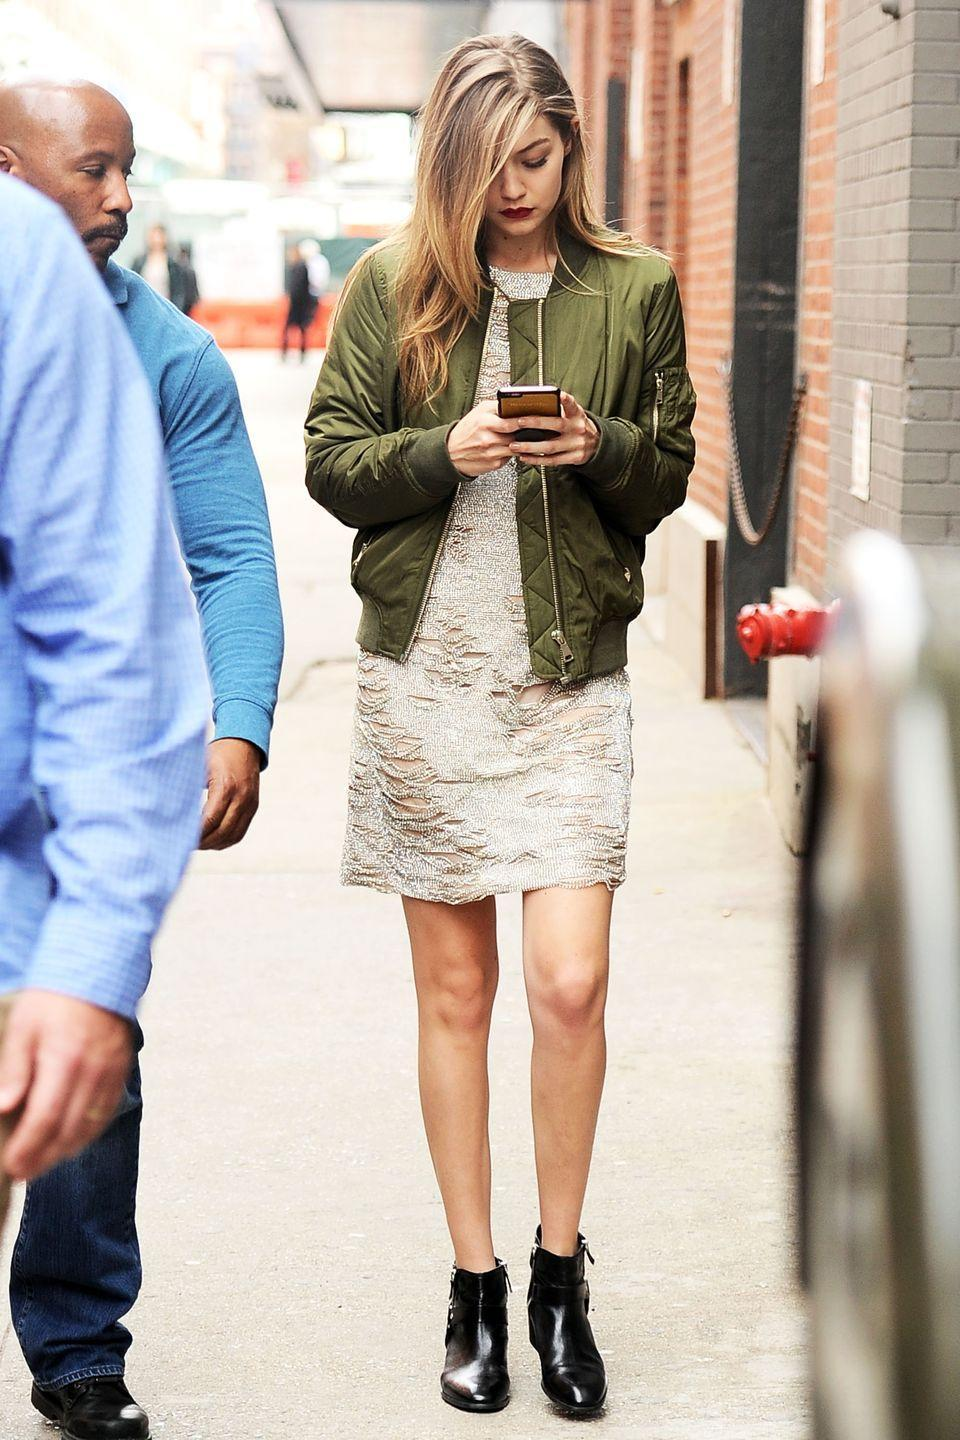 <p>The model looked chic in an embellished dress with distressed touches, paired with an on-trend olive green bomber jacket and black booties. </p>